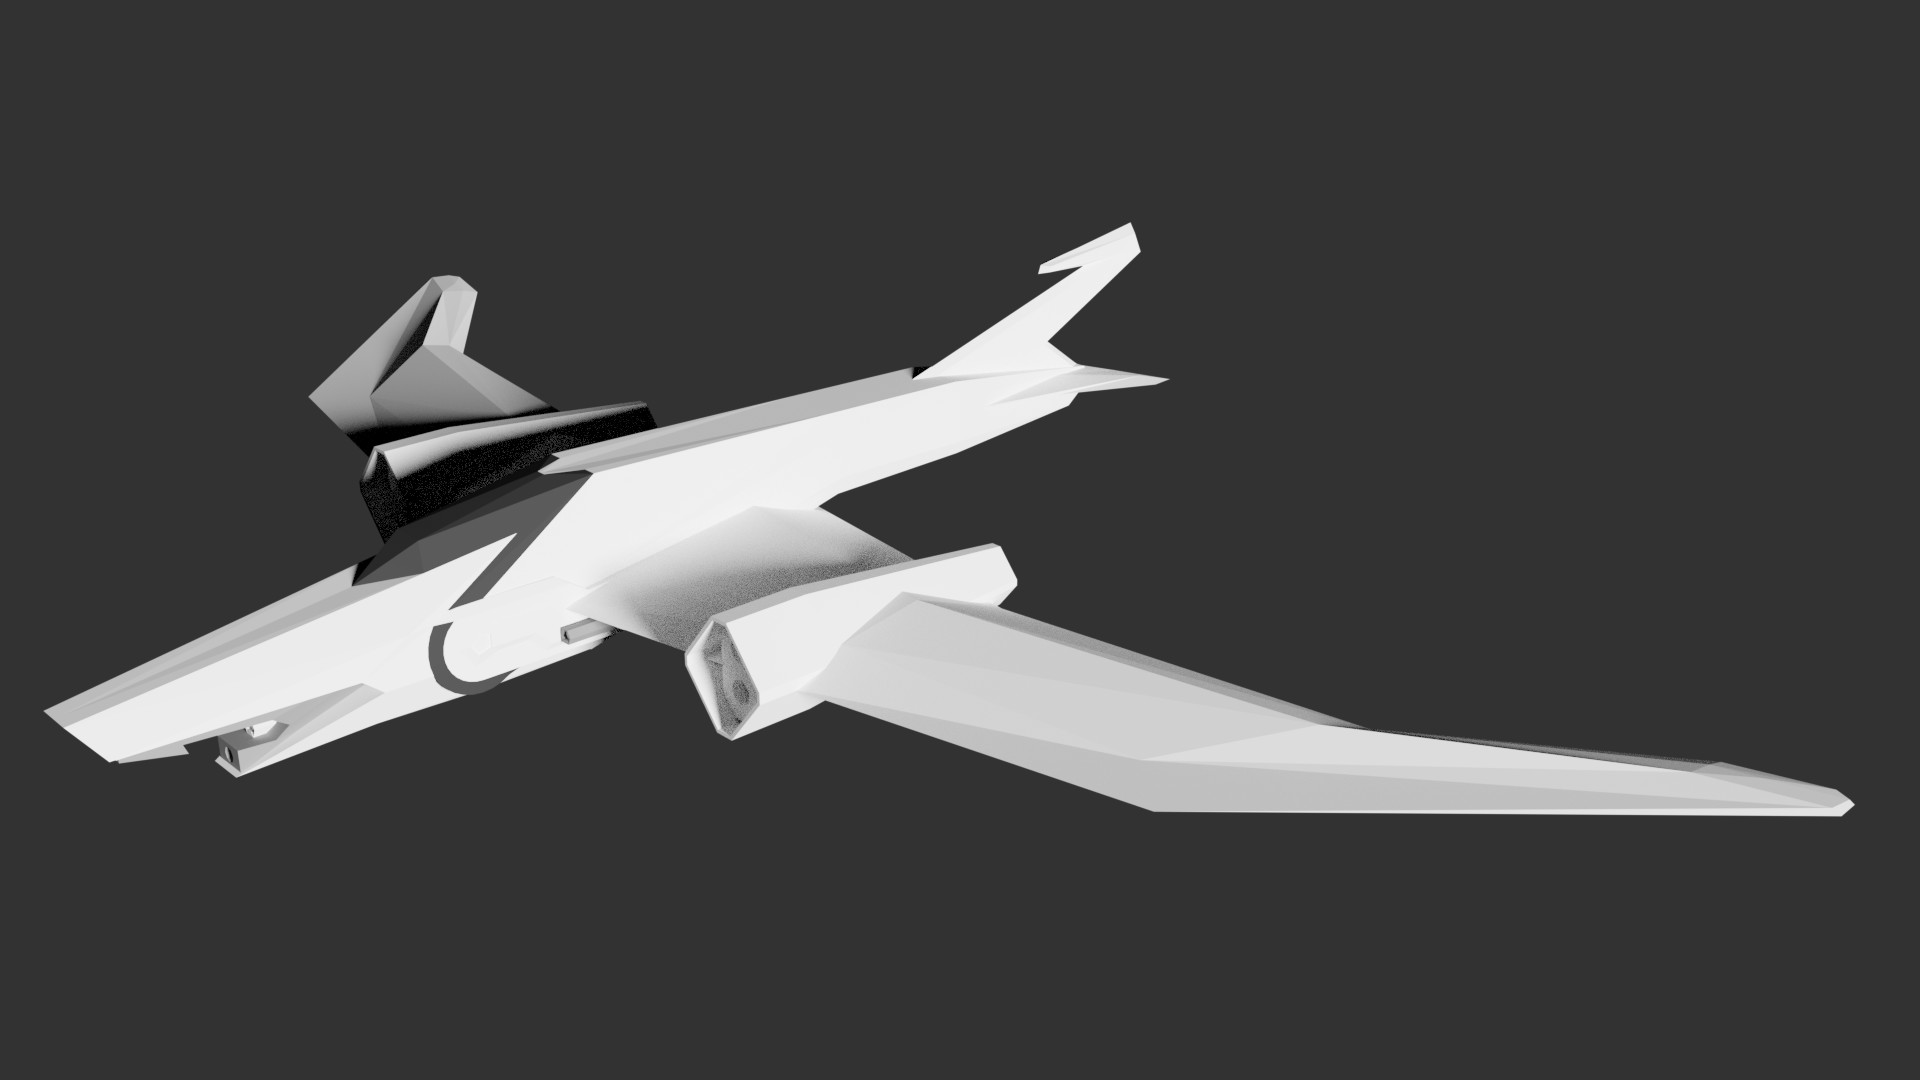 A reference model I made to better grasp the perspective and form of the fighter. Much of my weapon and vehicle concept designs tend to begin with a rough 3D model.